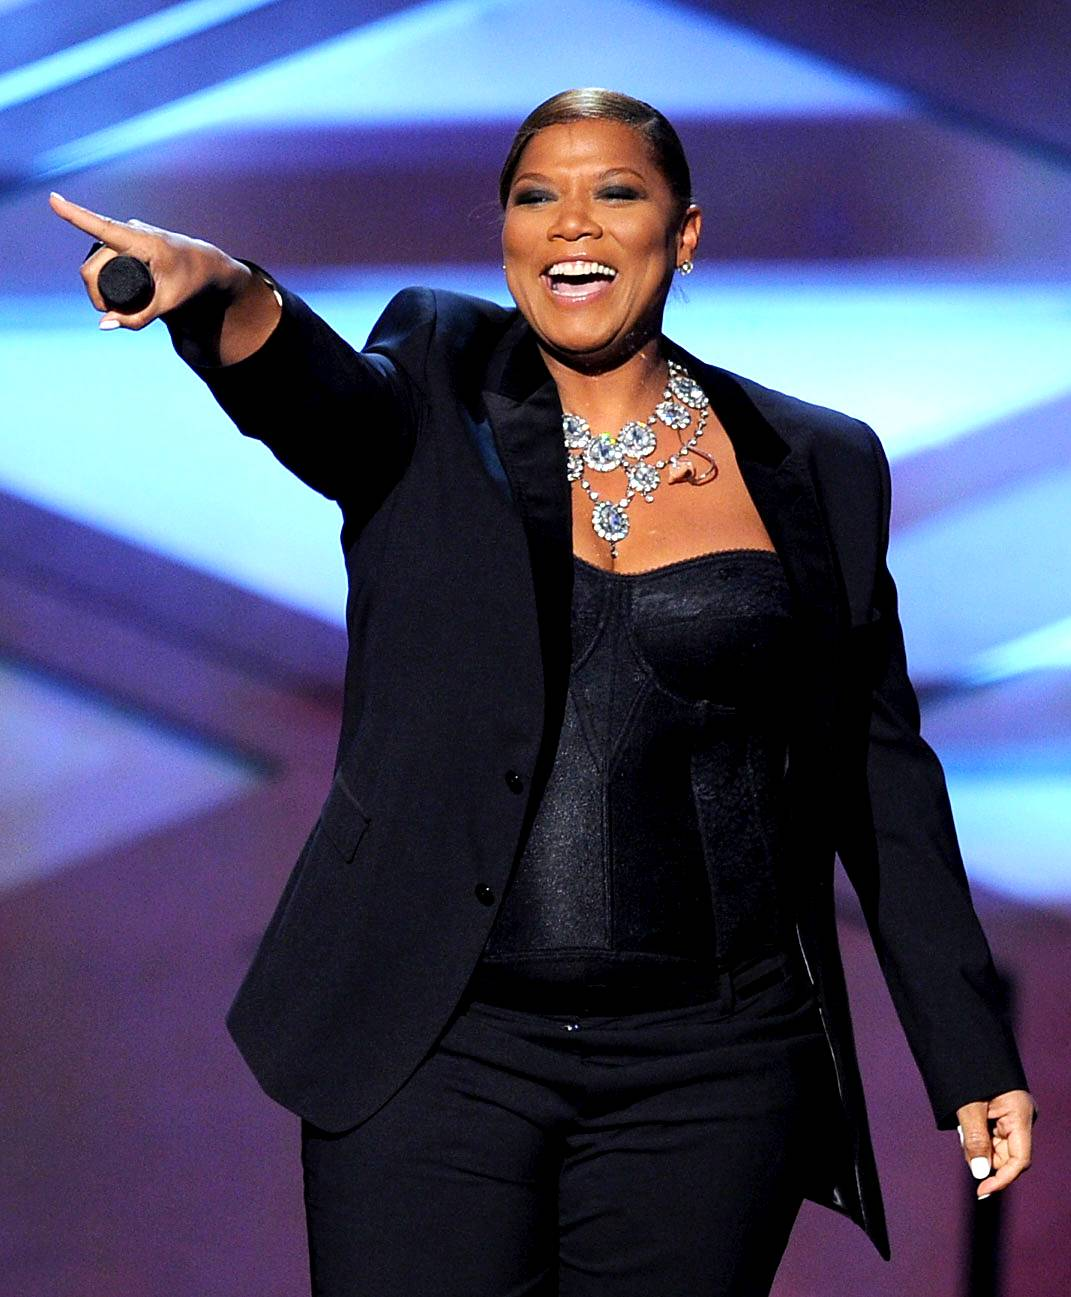 /content/dam/betcom/images/2011/06/Shows/BET-Awards-2011/062211-shows-bet-awards-queen-latifah-road-peoples-choice.jpg